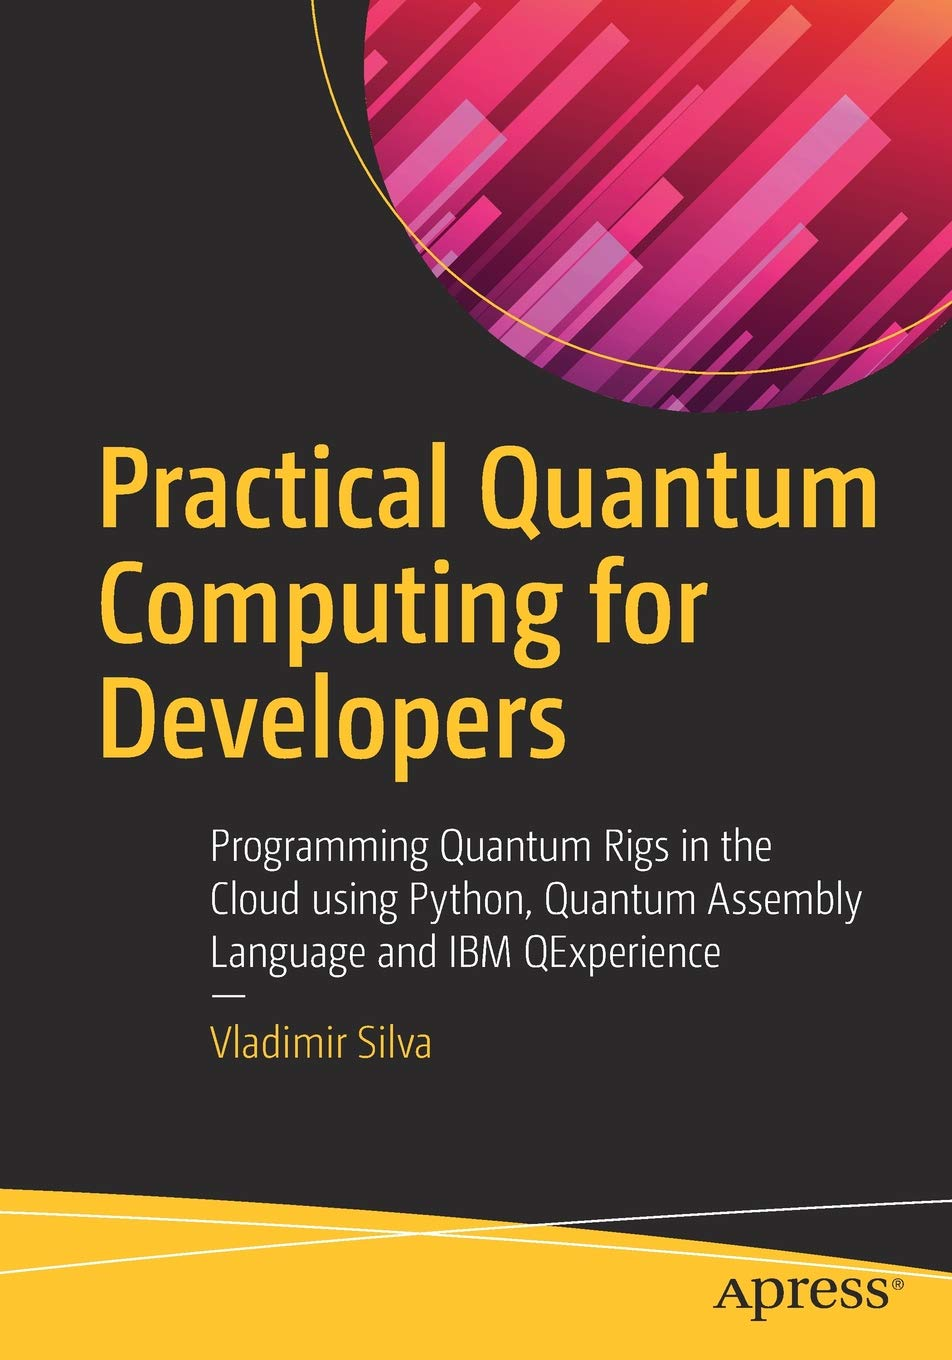 Practical Quantum Computing for Developers: Programming Quantum Rigs in the Cloud using Python, Quantum Assembly Language and IBM QExperience por Vladimir Silva